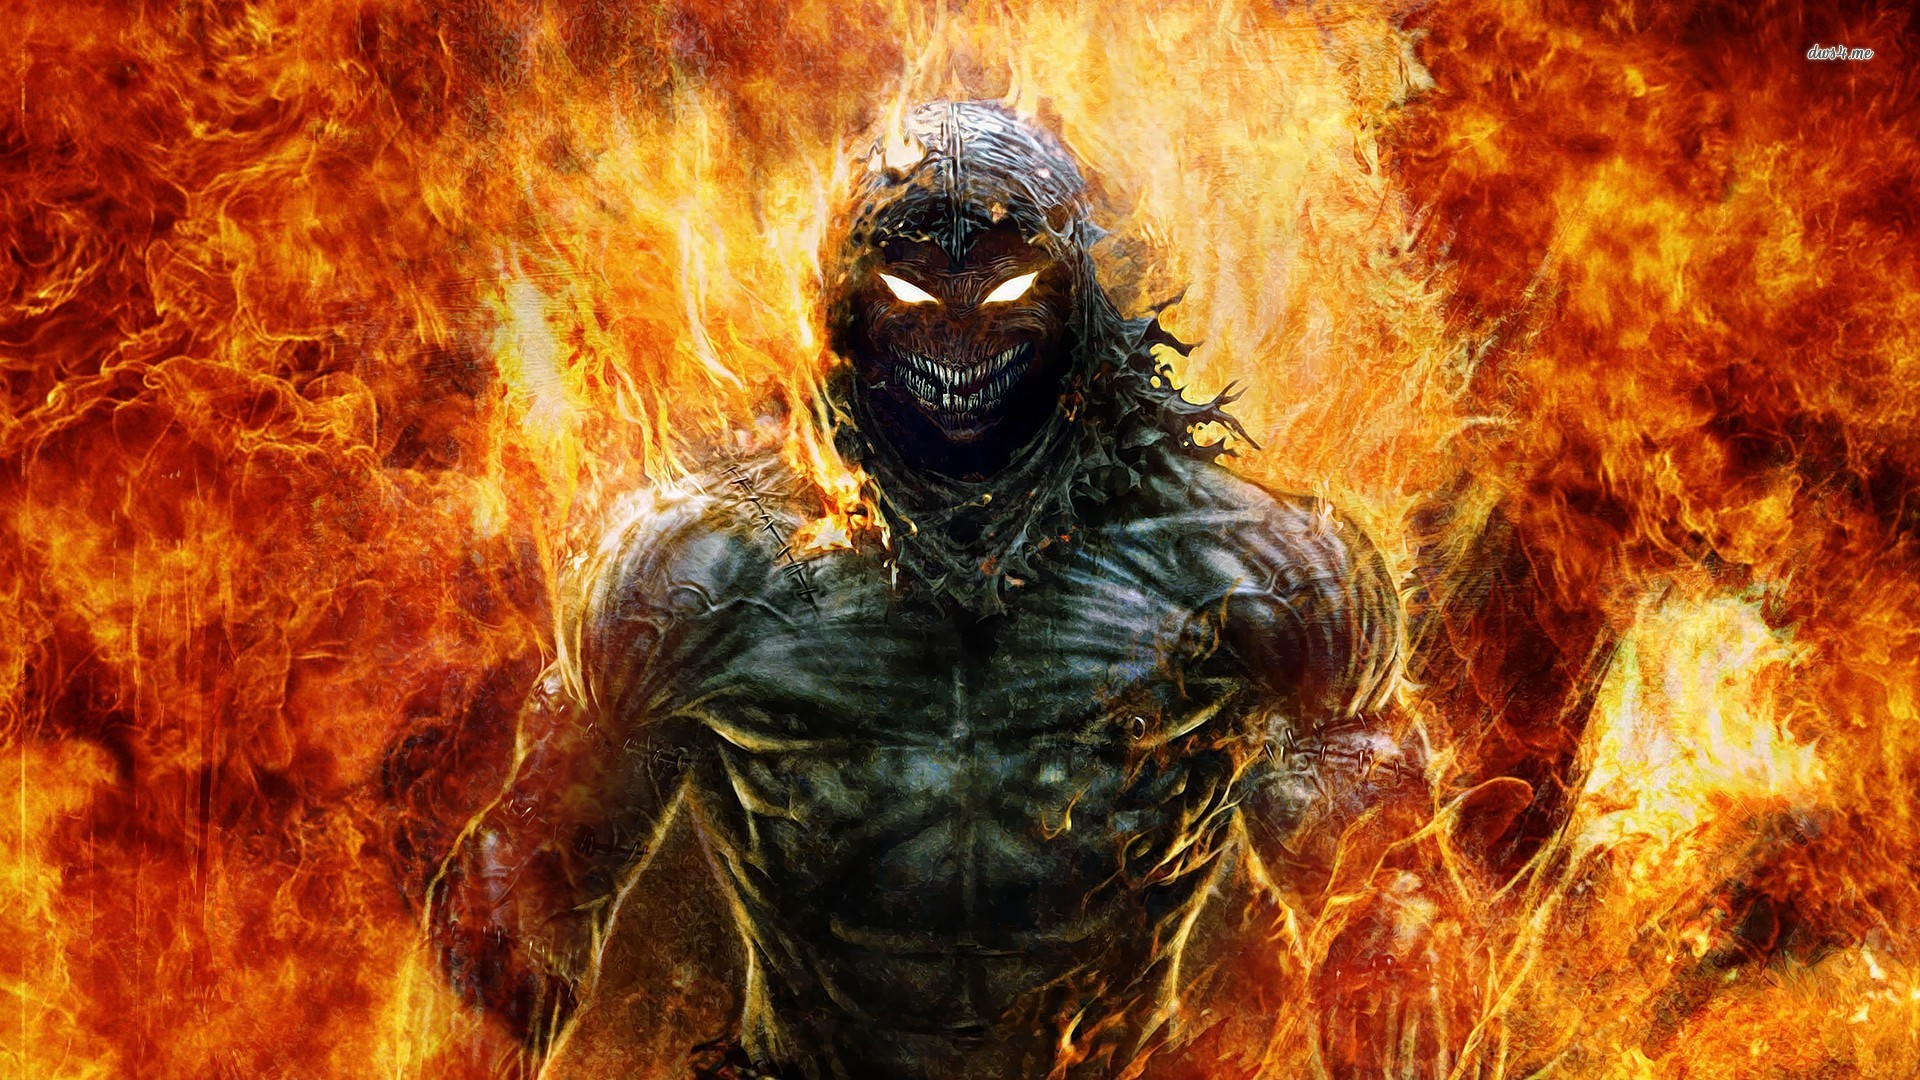 Burning In Hell wallpapers HD free – 396100